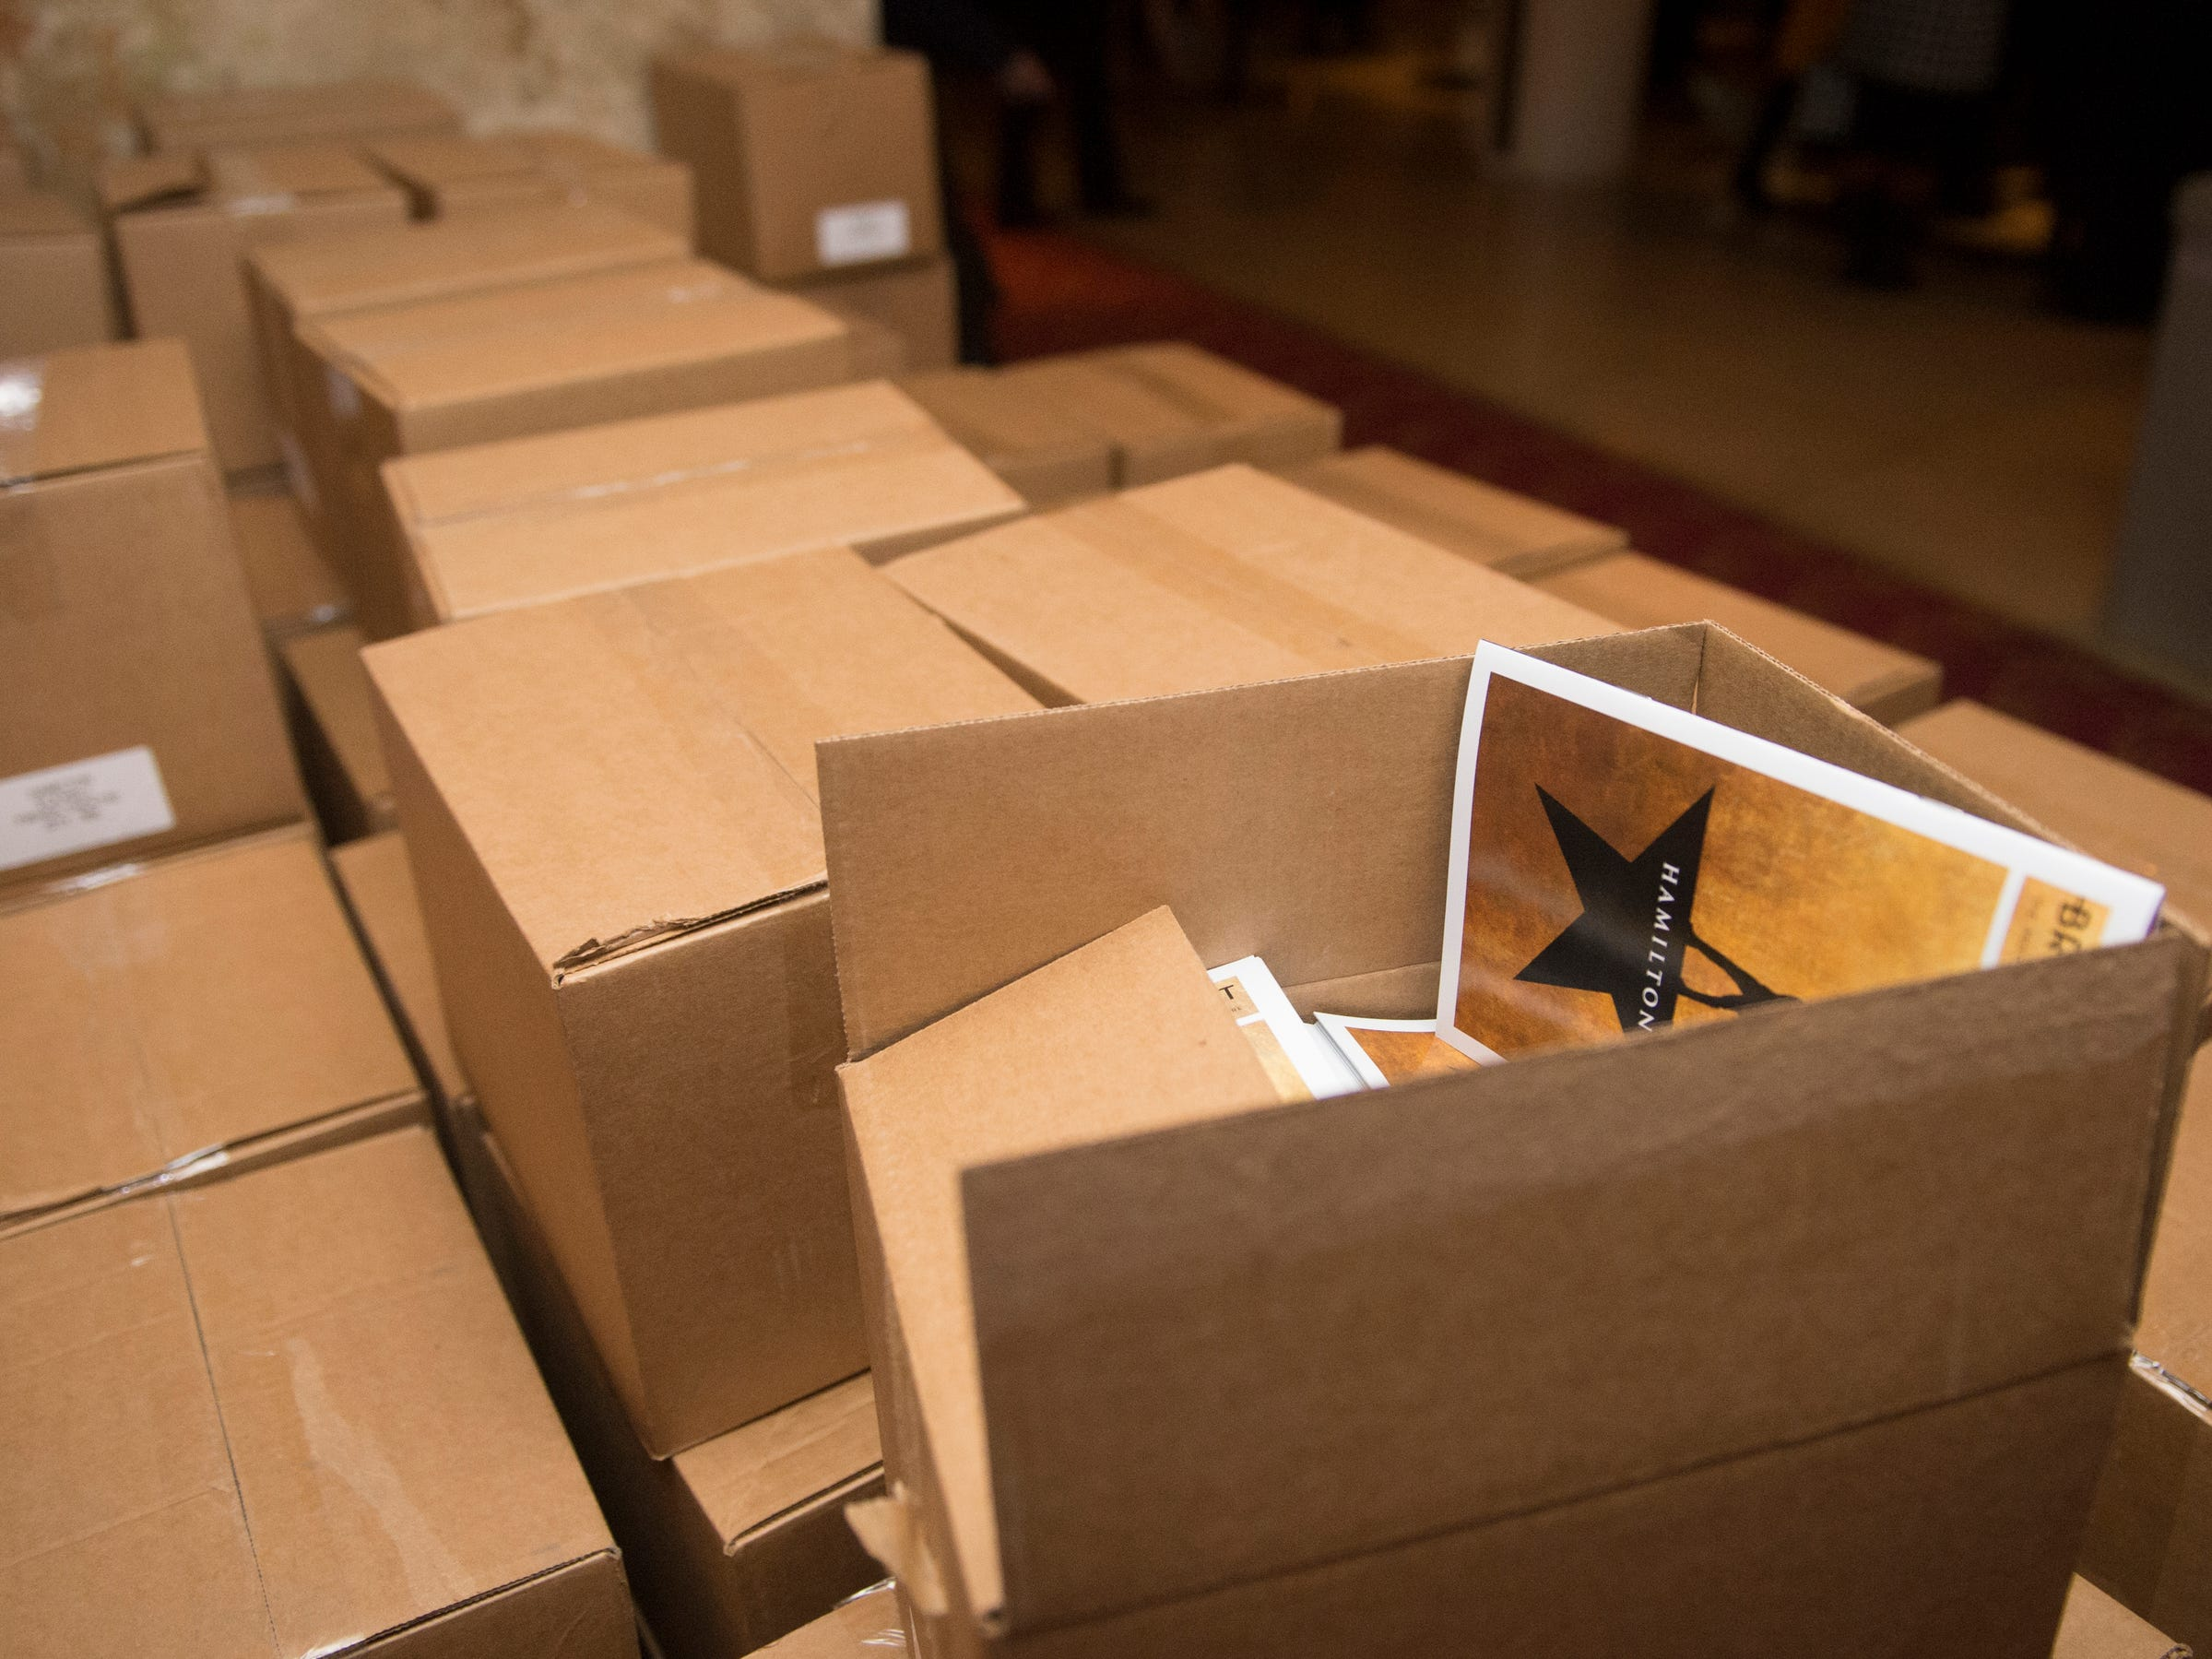 A pallet's worth of Hamilton programs sit in the lobby of the Fisher Theatre on Tuesday, March 12, 2019. The opening night of Broadway's Hamilton played to a full house in Detroit on Tuesday.